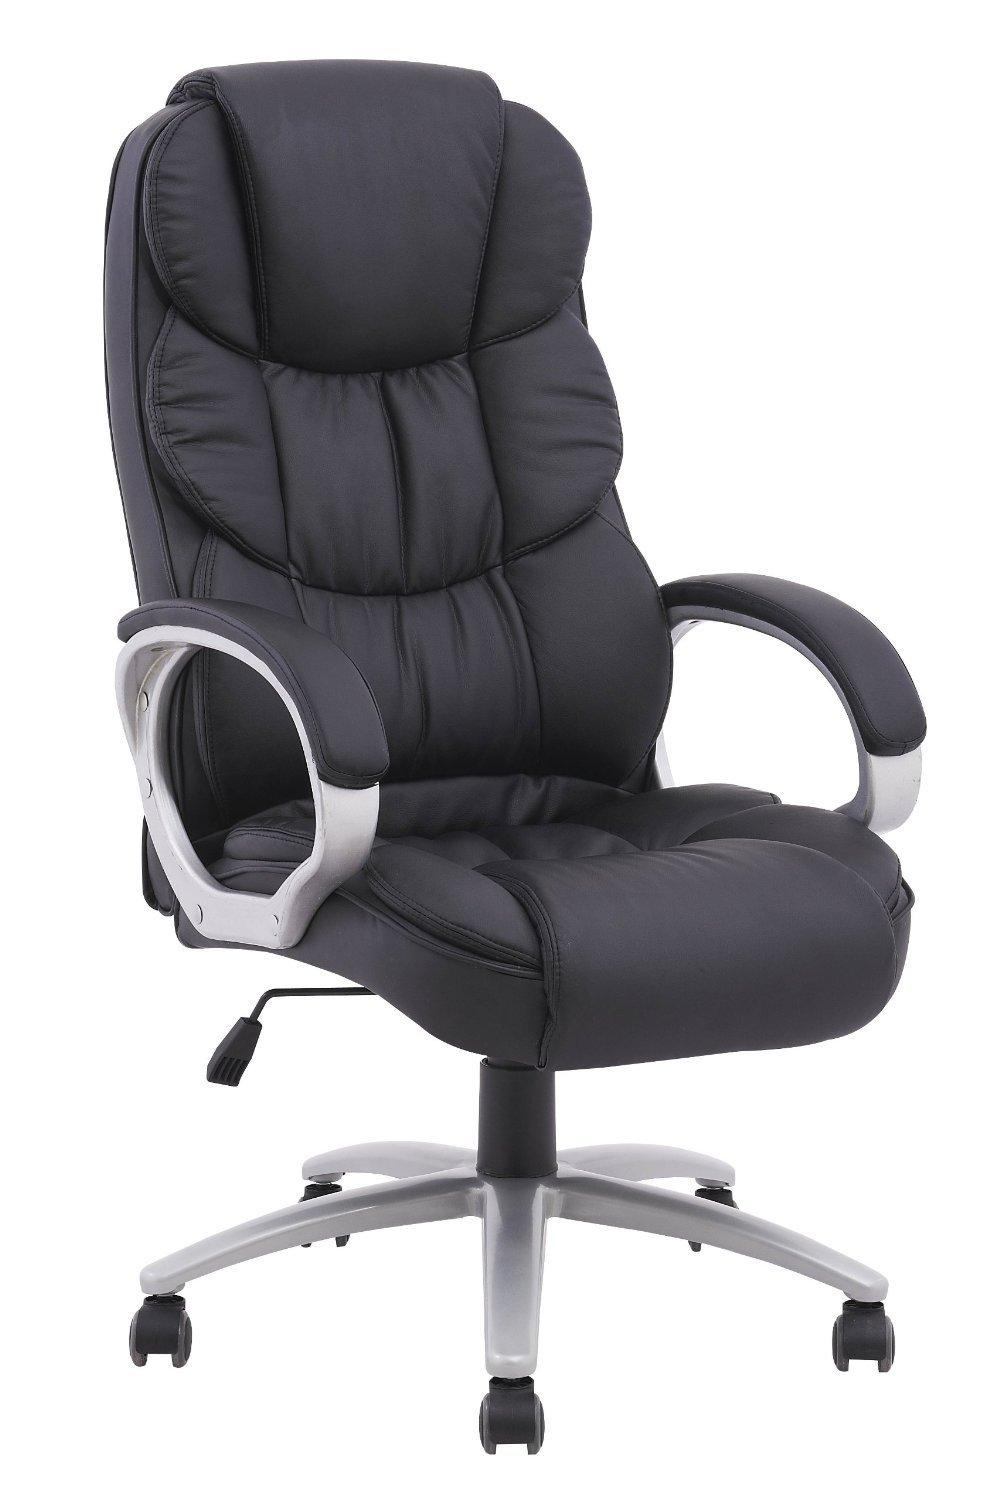 ▻ Chairs : 5 Great Computer Chairs Great Office Chairs Sofas In Ergonomic Sofas And Chairs (Image 1 of 20)